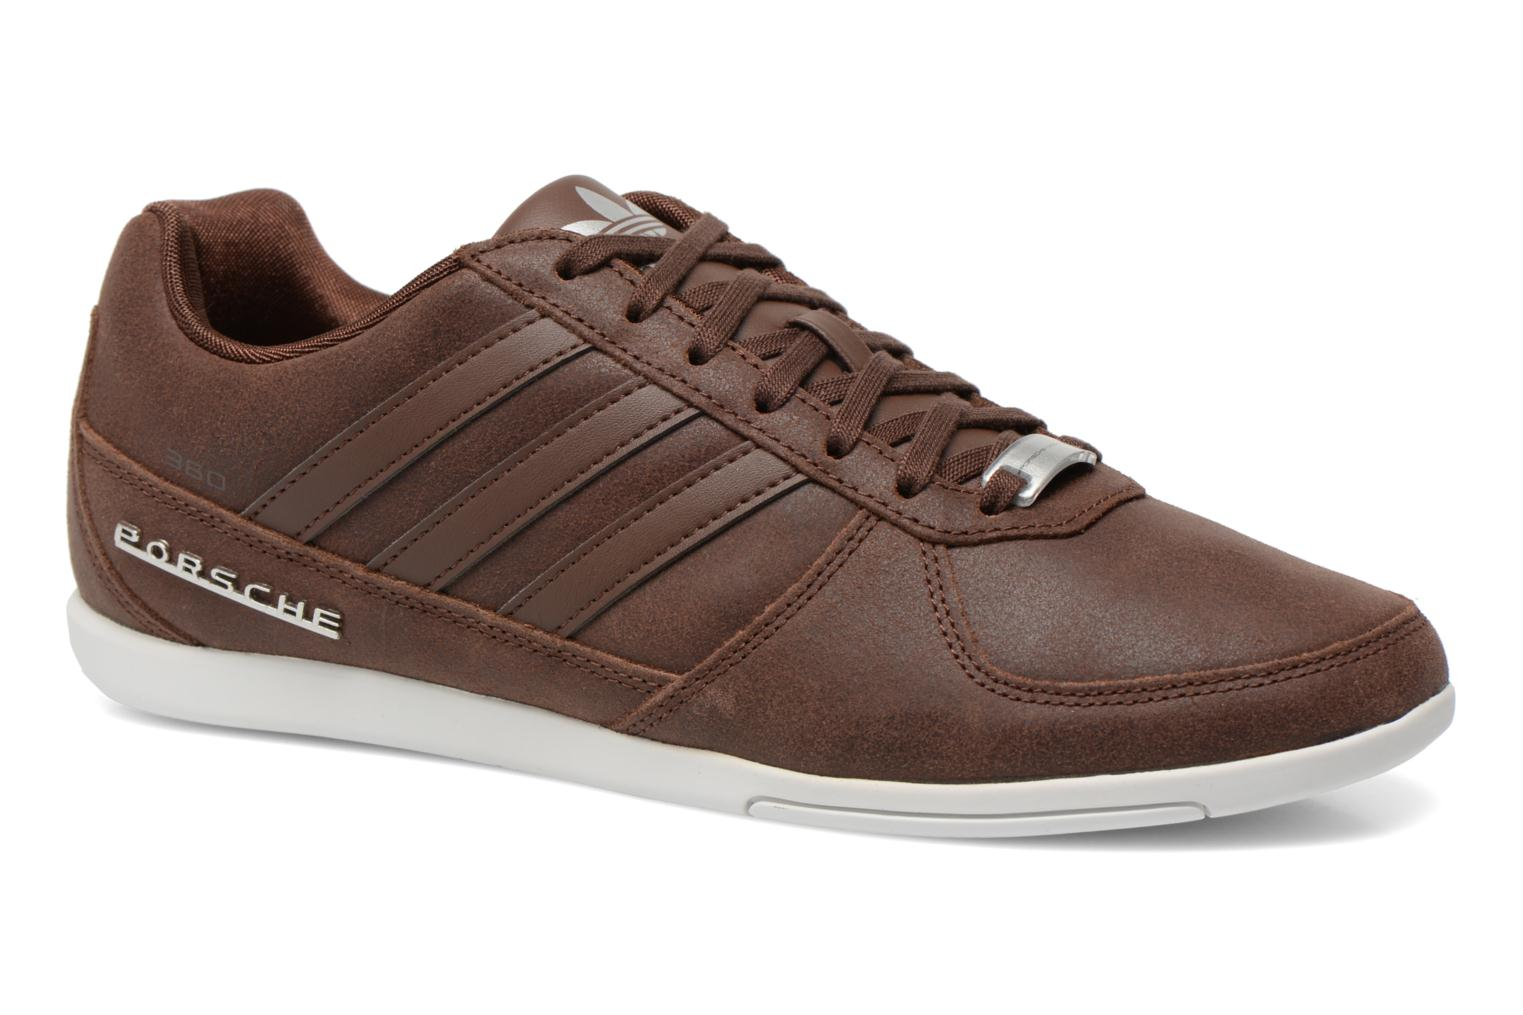 Baskets Adidas Originals Porsche 360 1.2 Suede Marron vue détail/paire